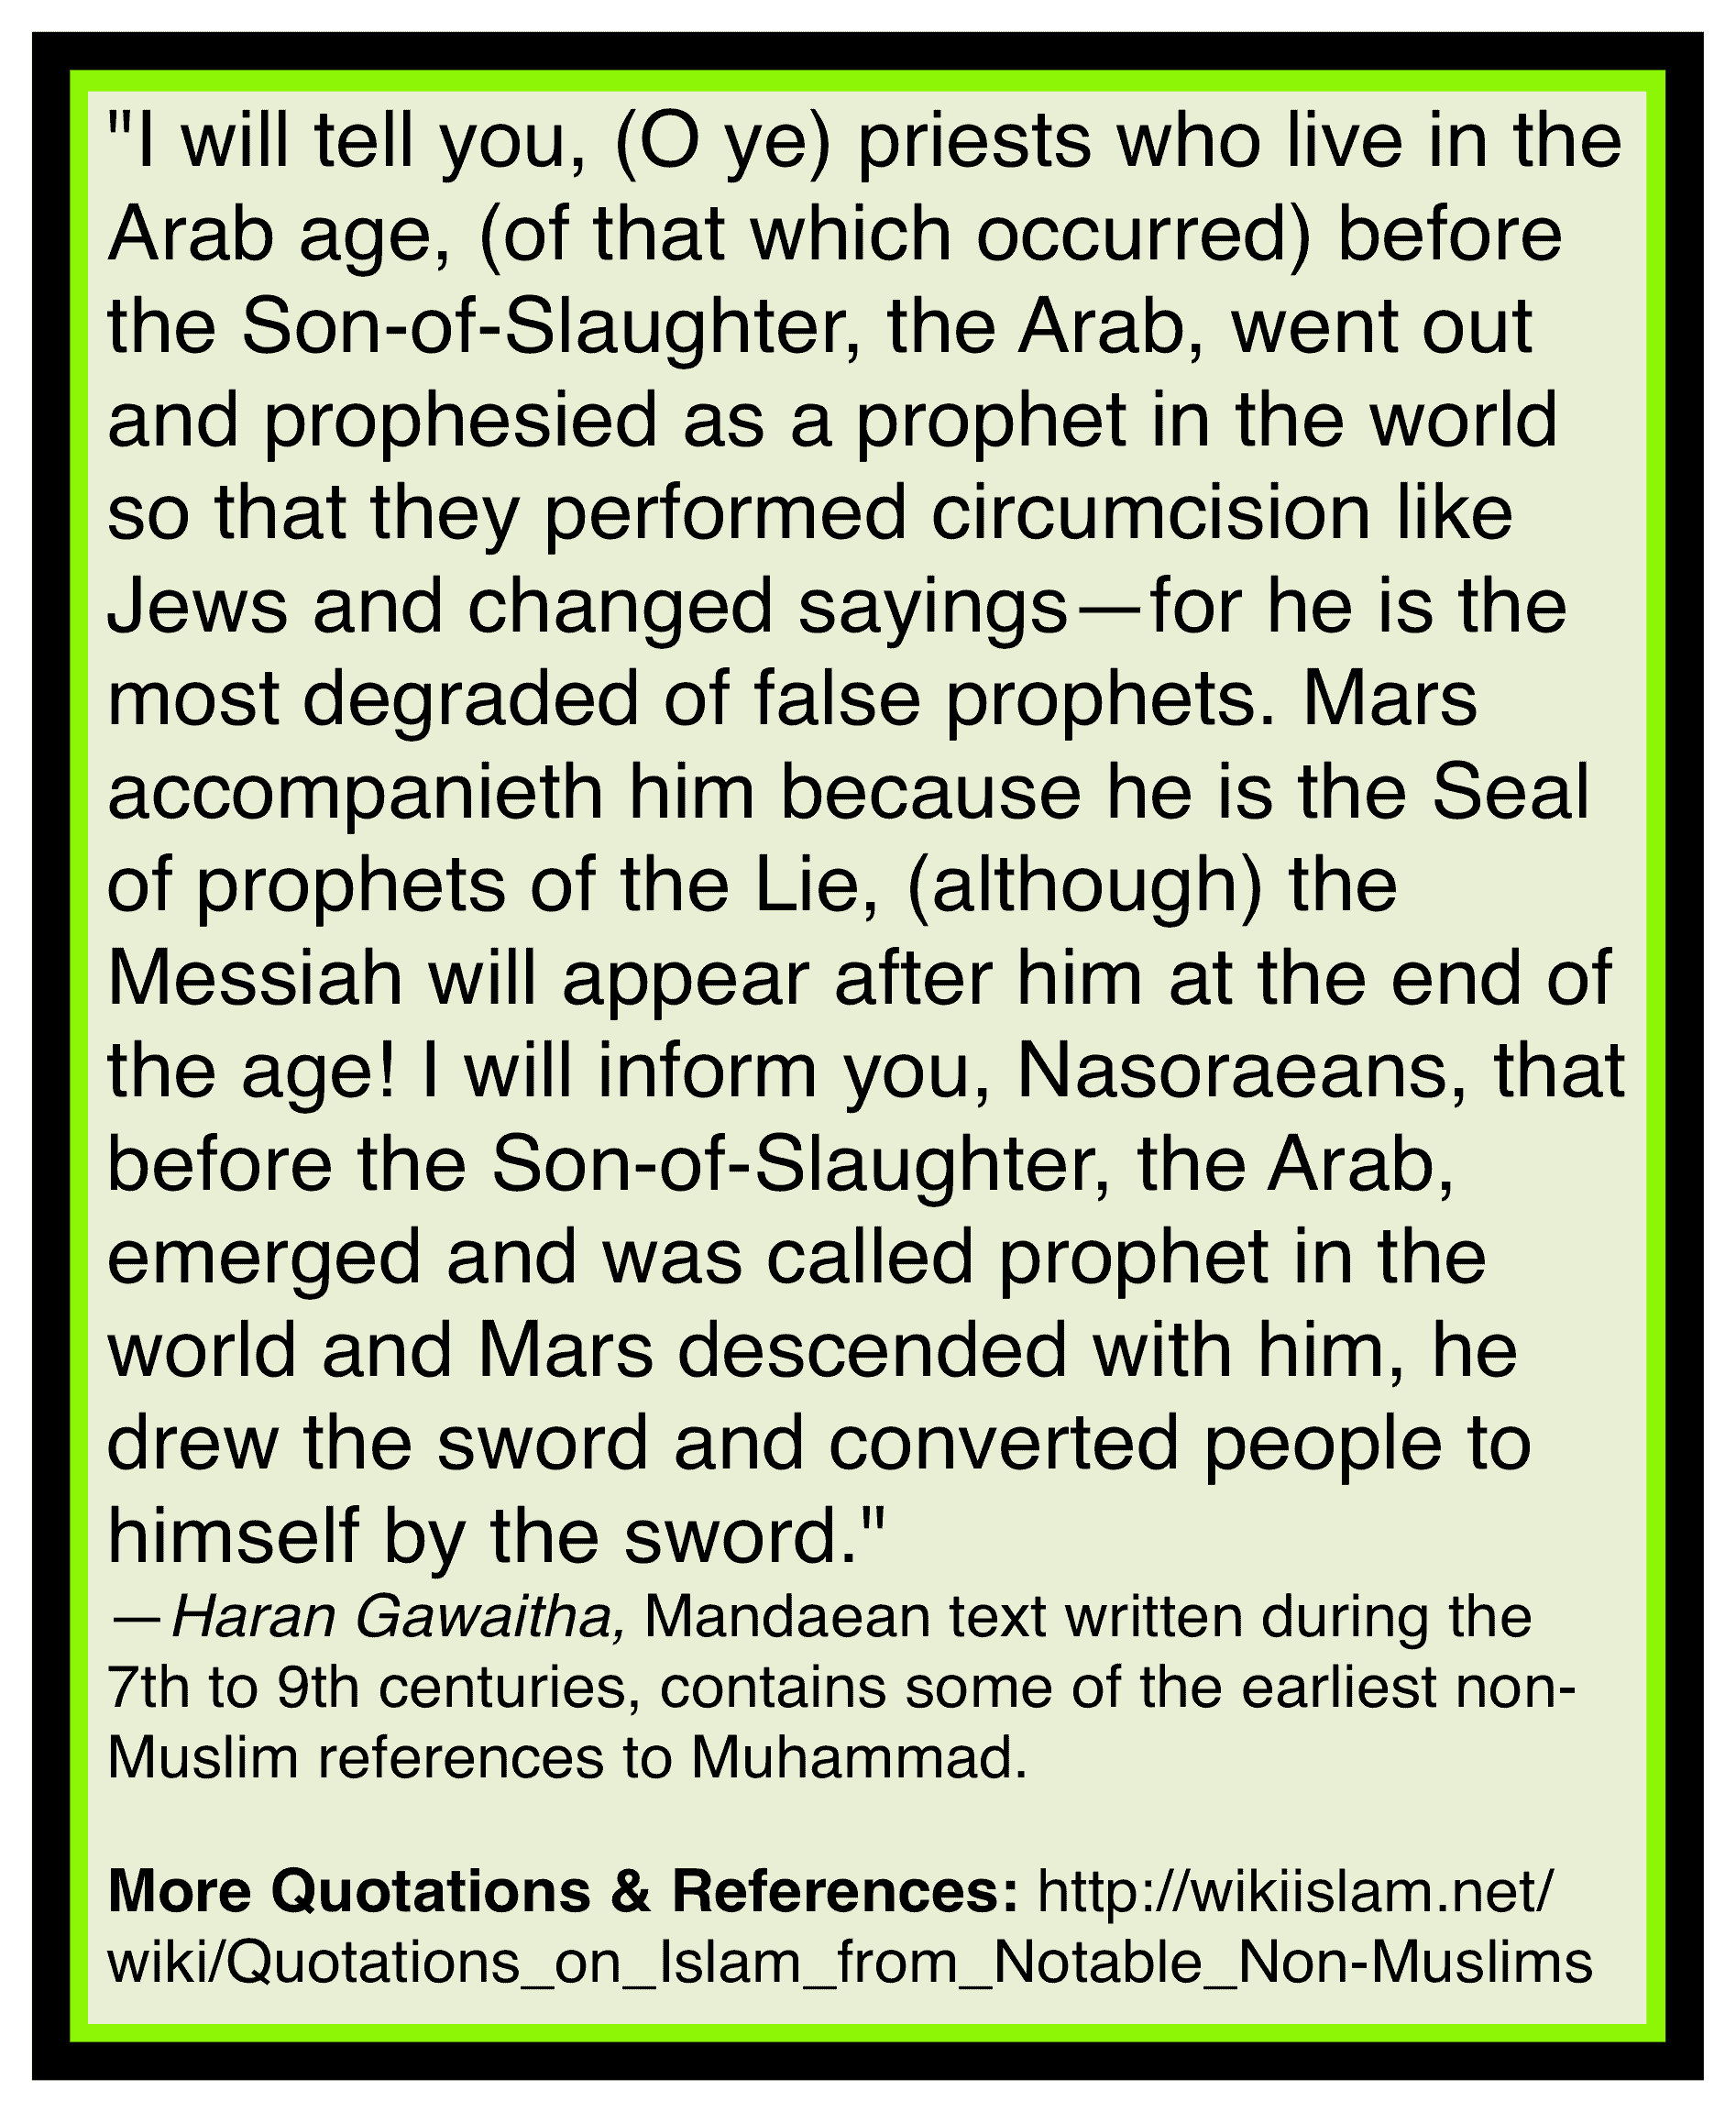 Muhammad is a fake